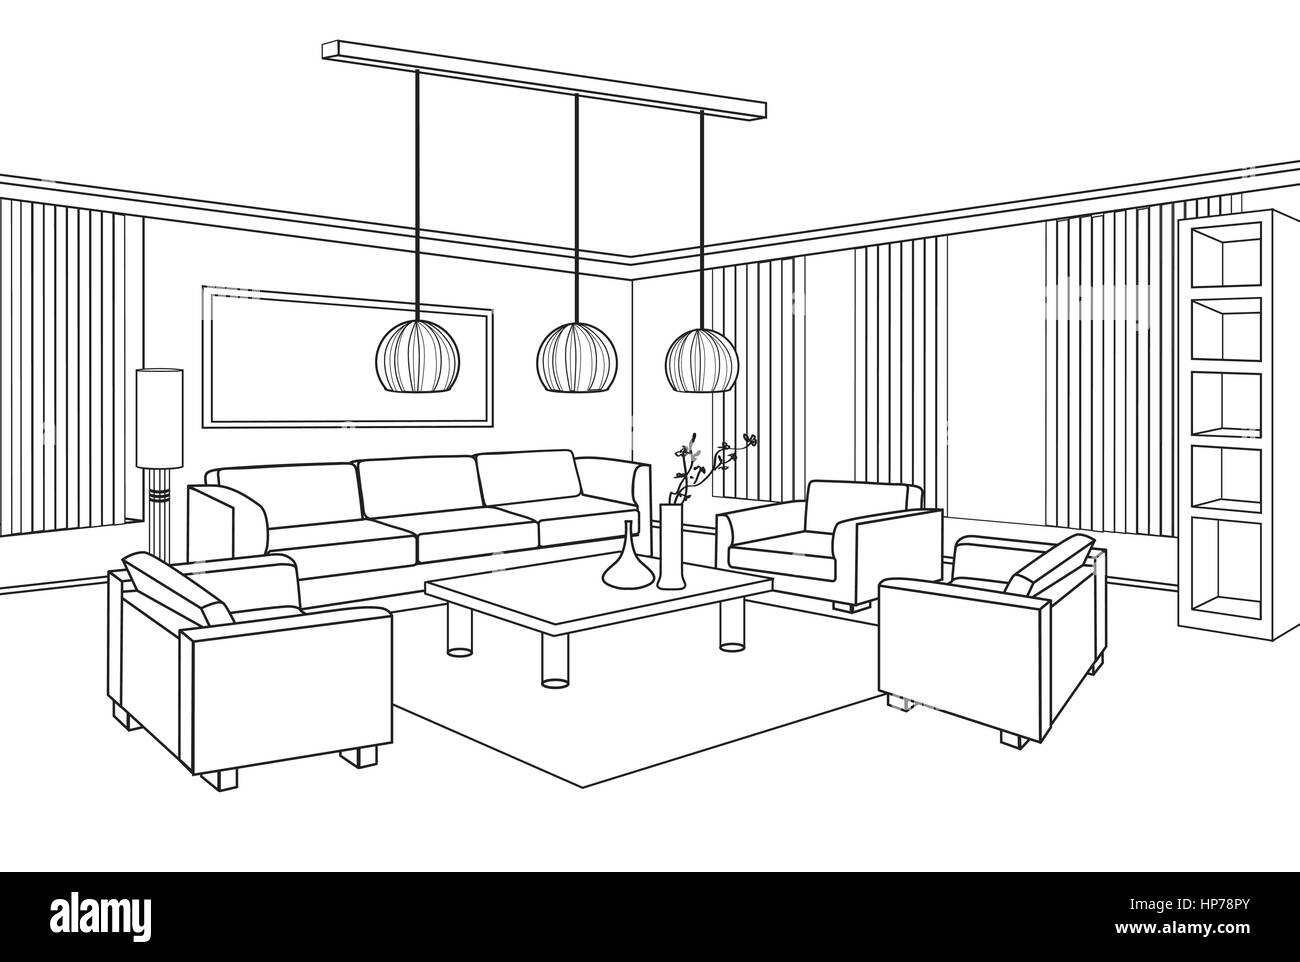 Living Room View. Interior Outline Sketch. Furniture Blueprint.